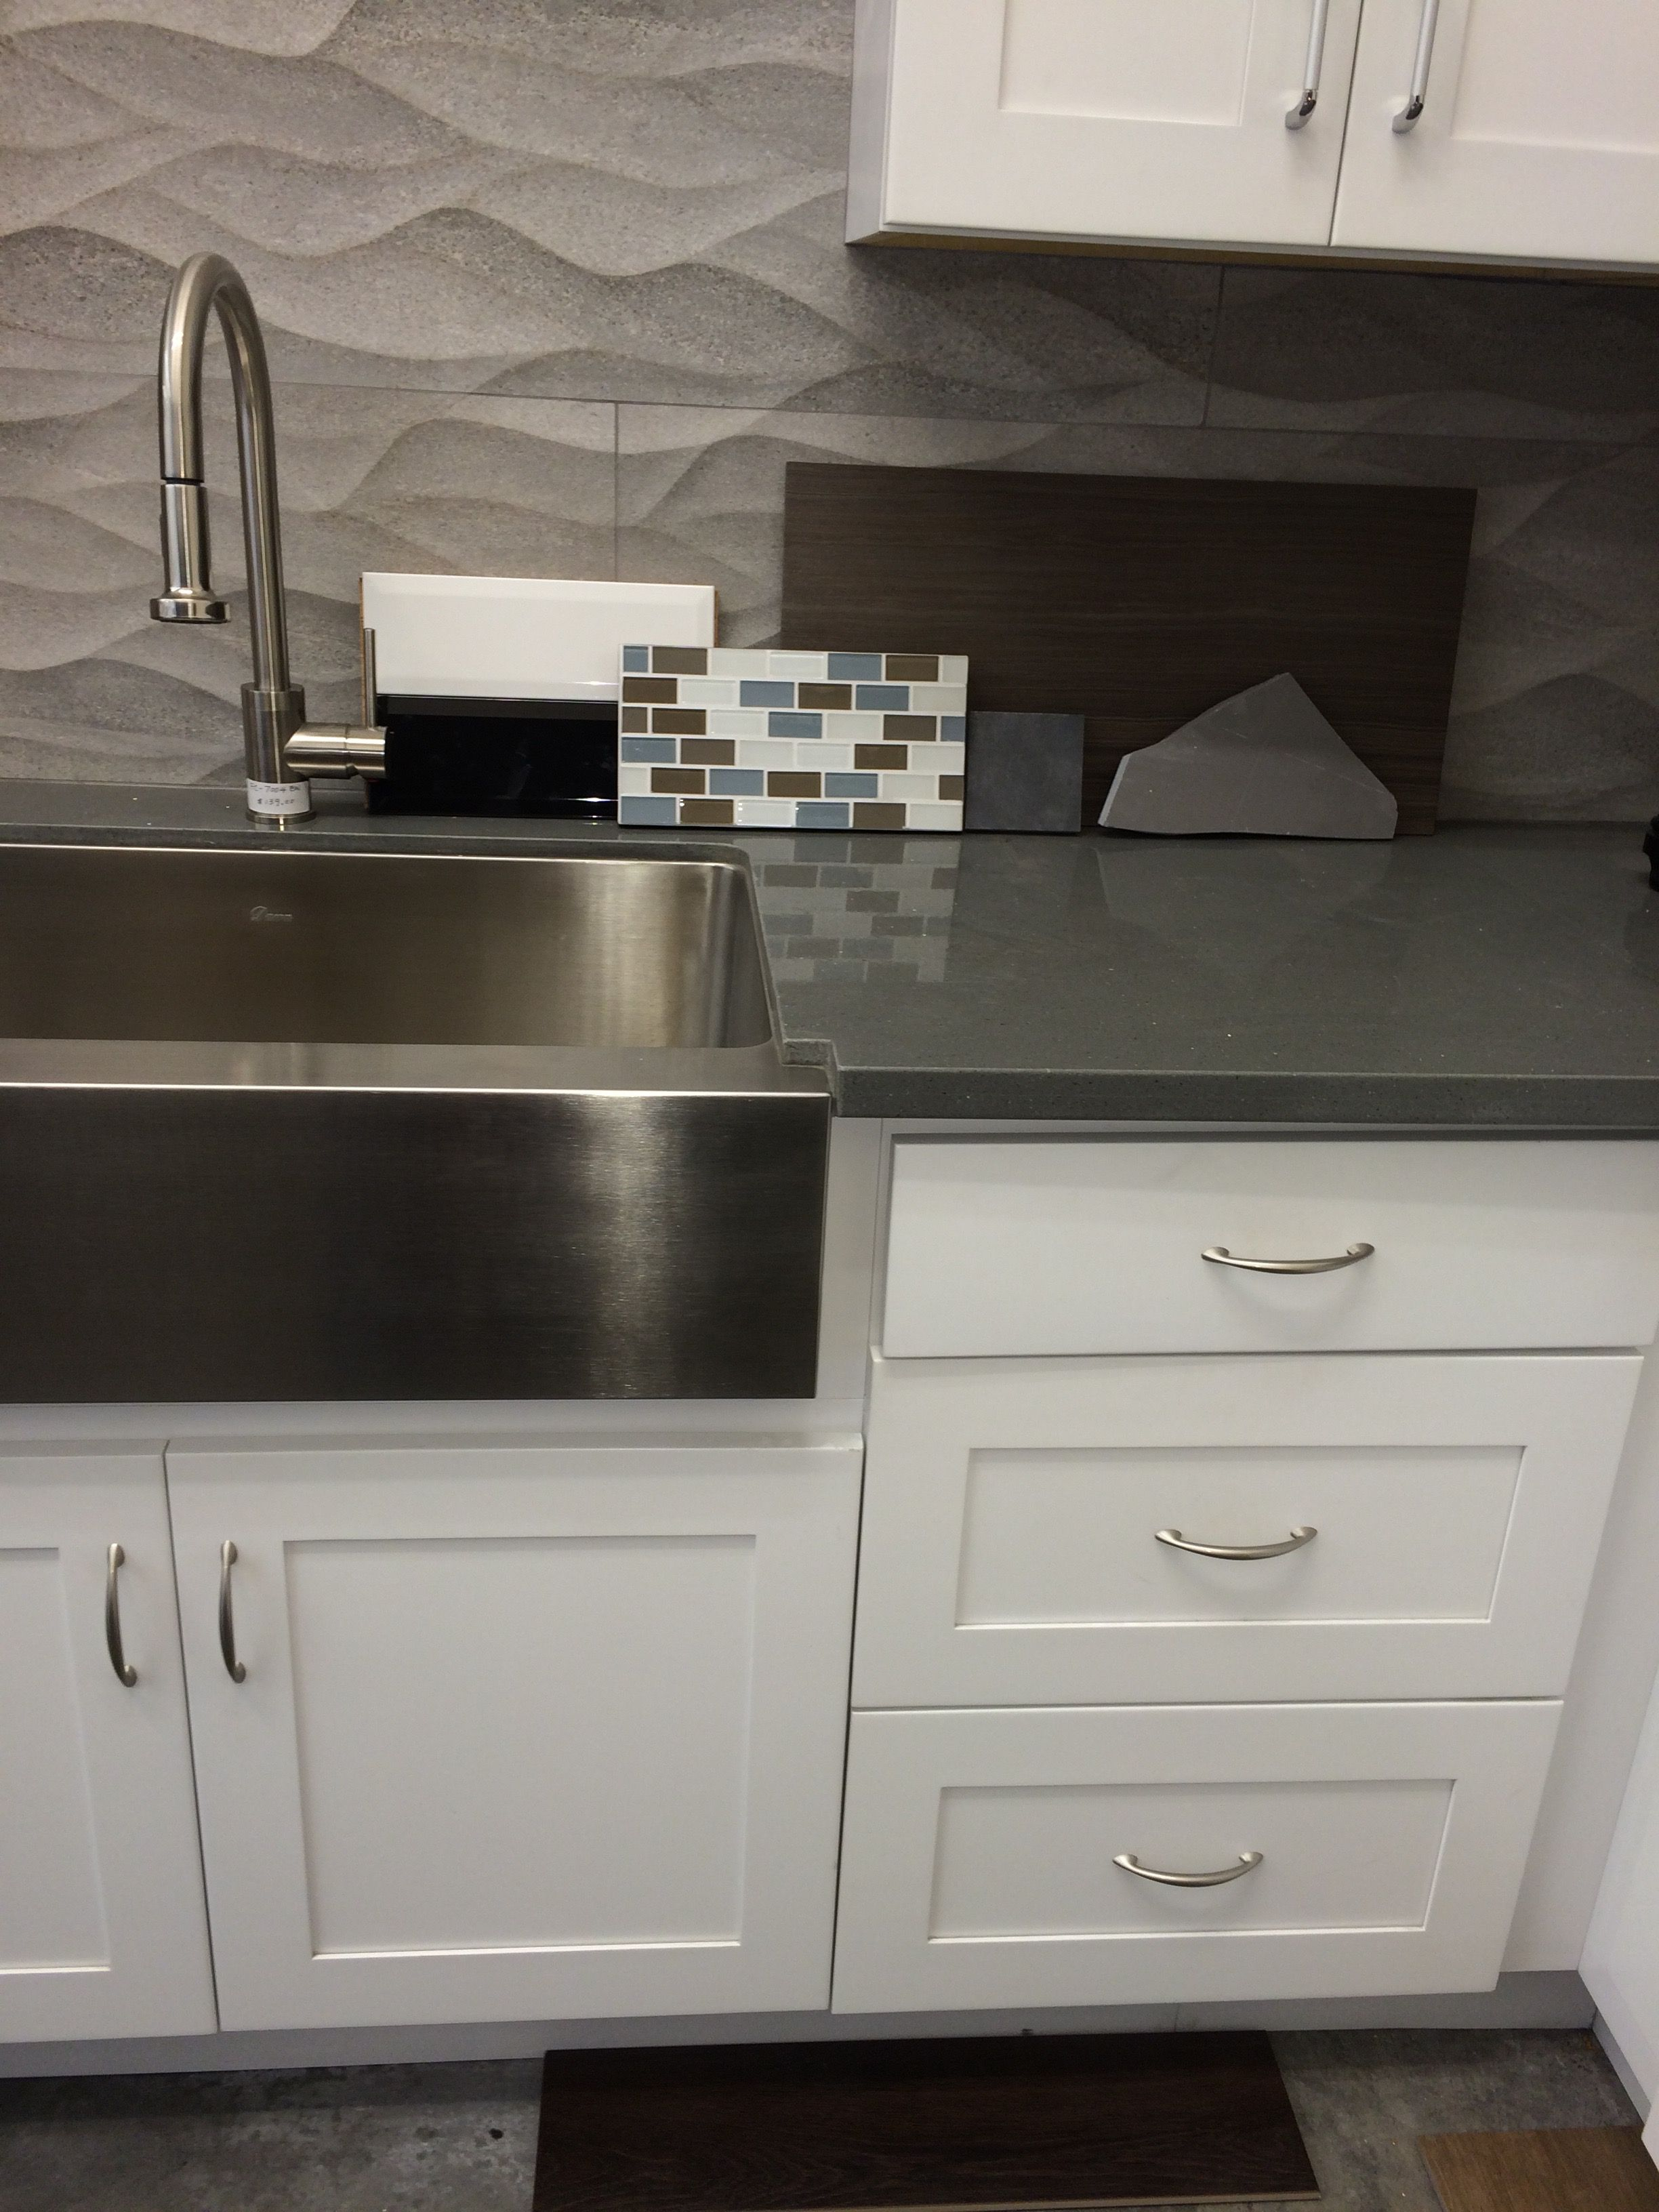 The Flat Drawers And Cabinets In White Grey Quartz Countertop